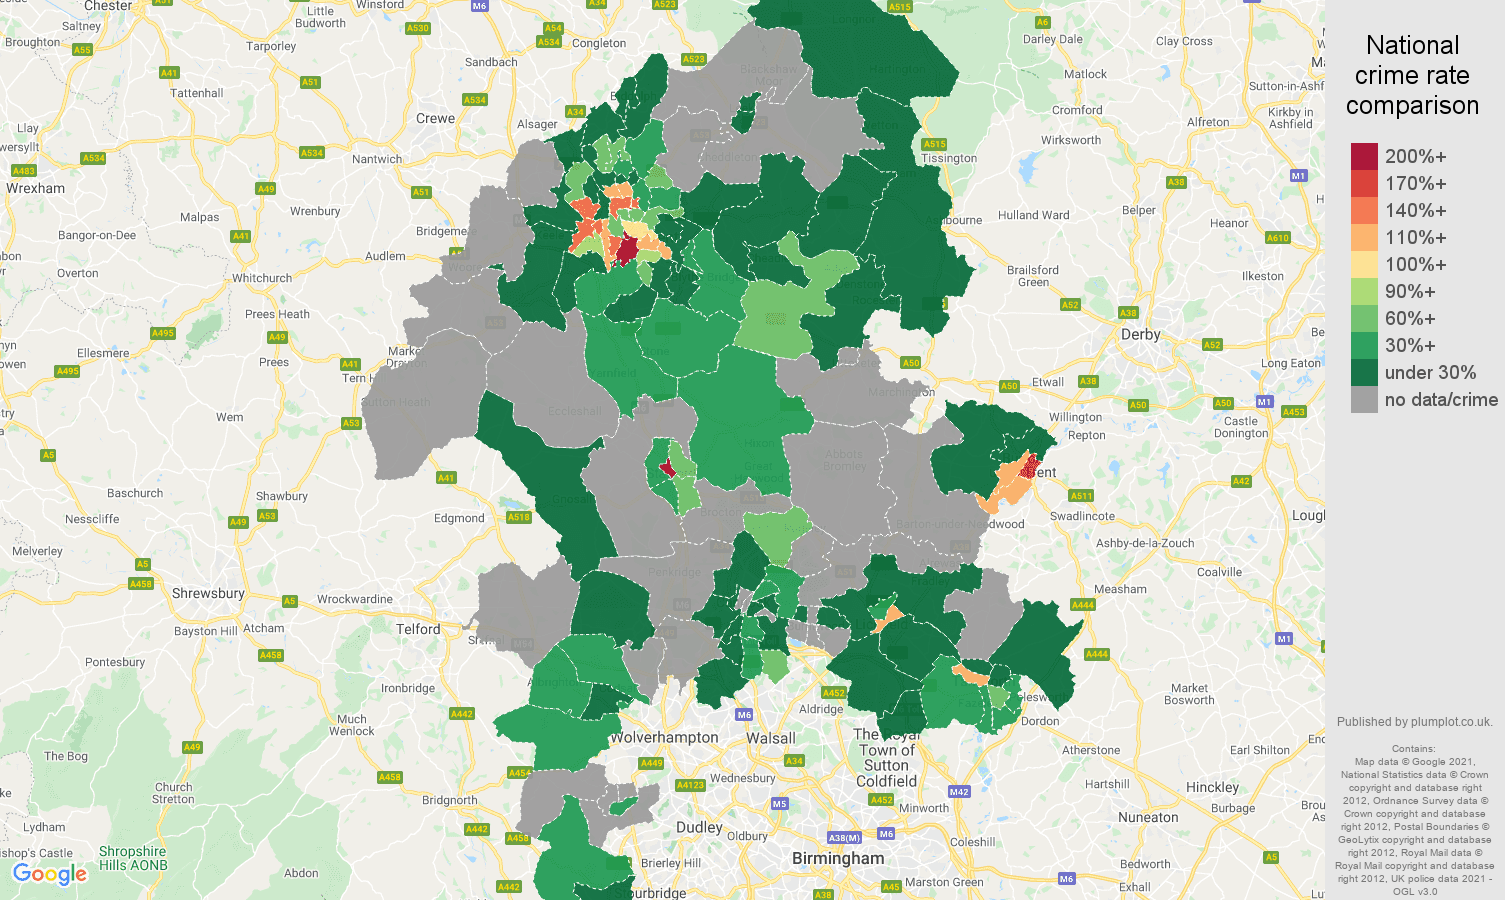 Staffordshire bicycle theft crime rate comparison map